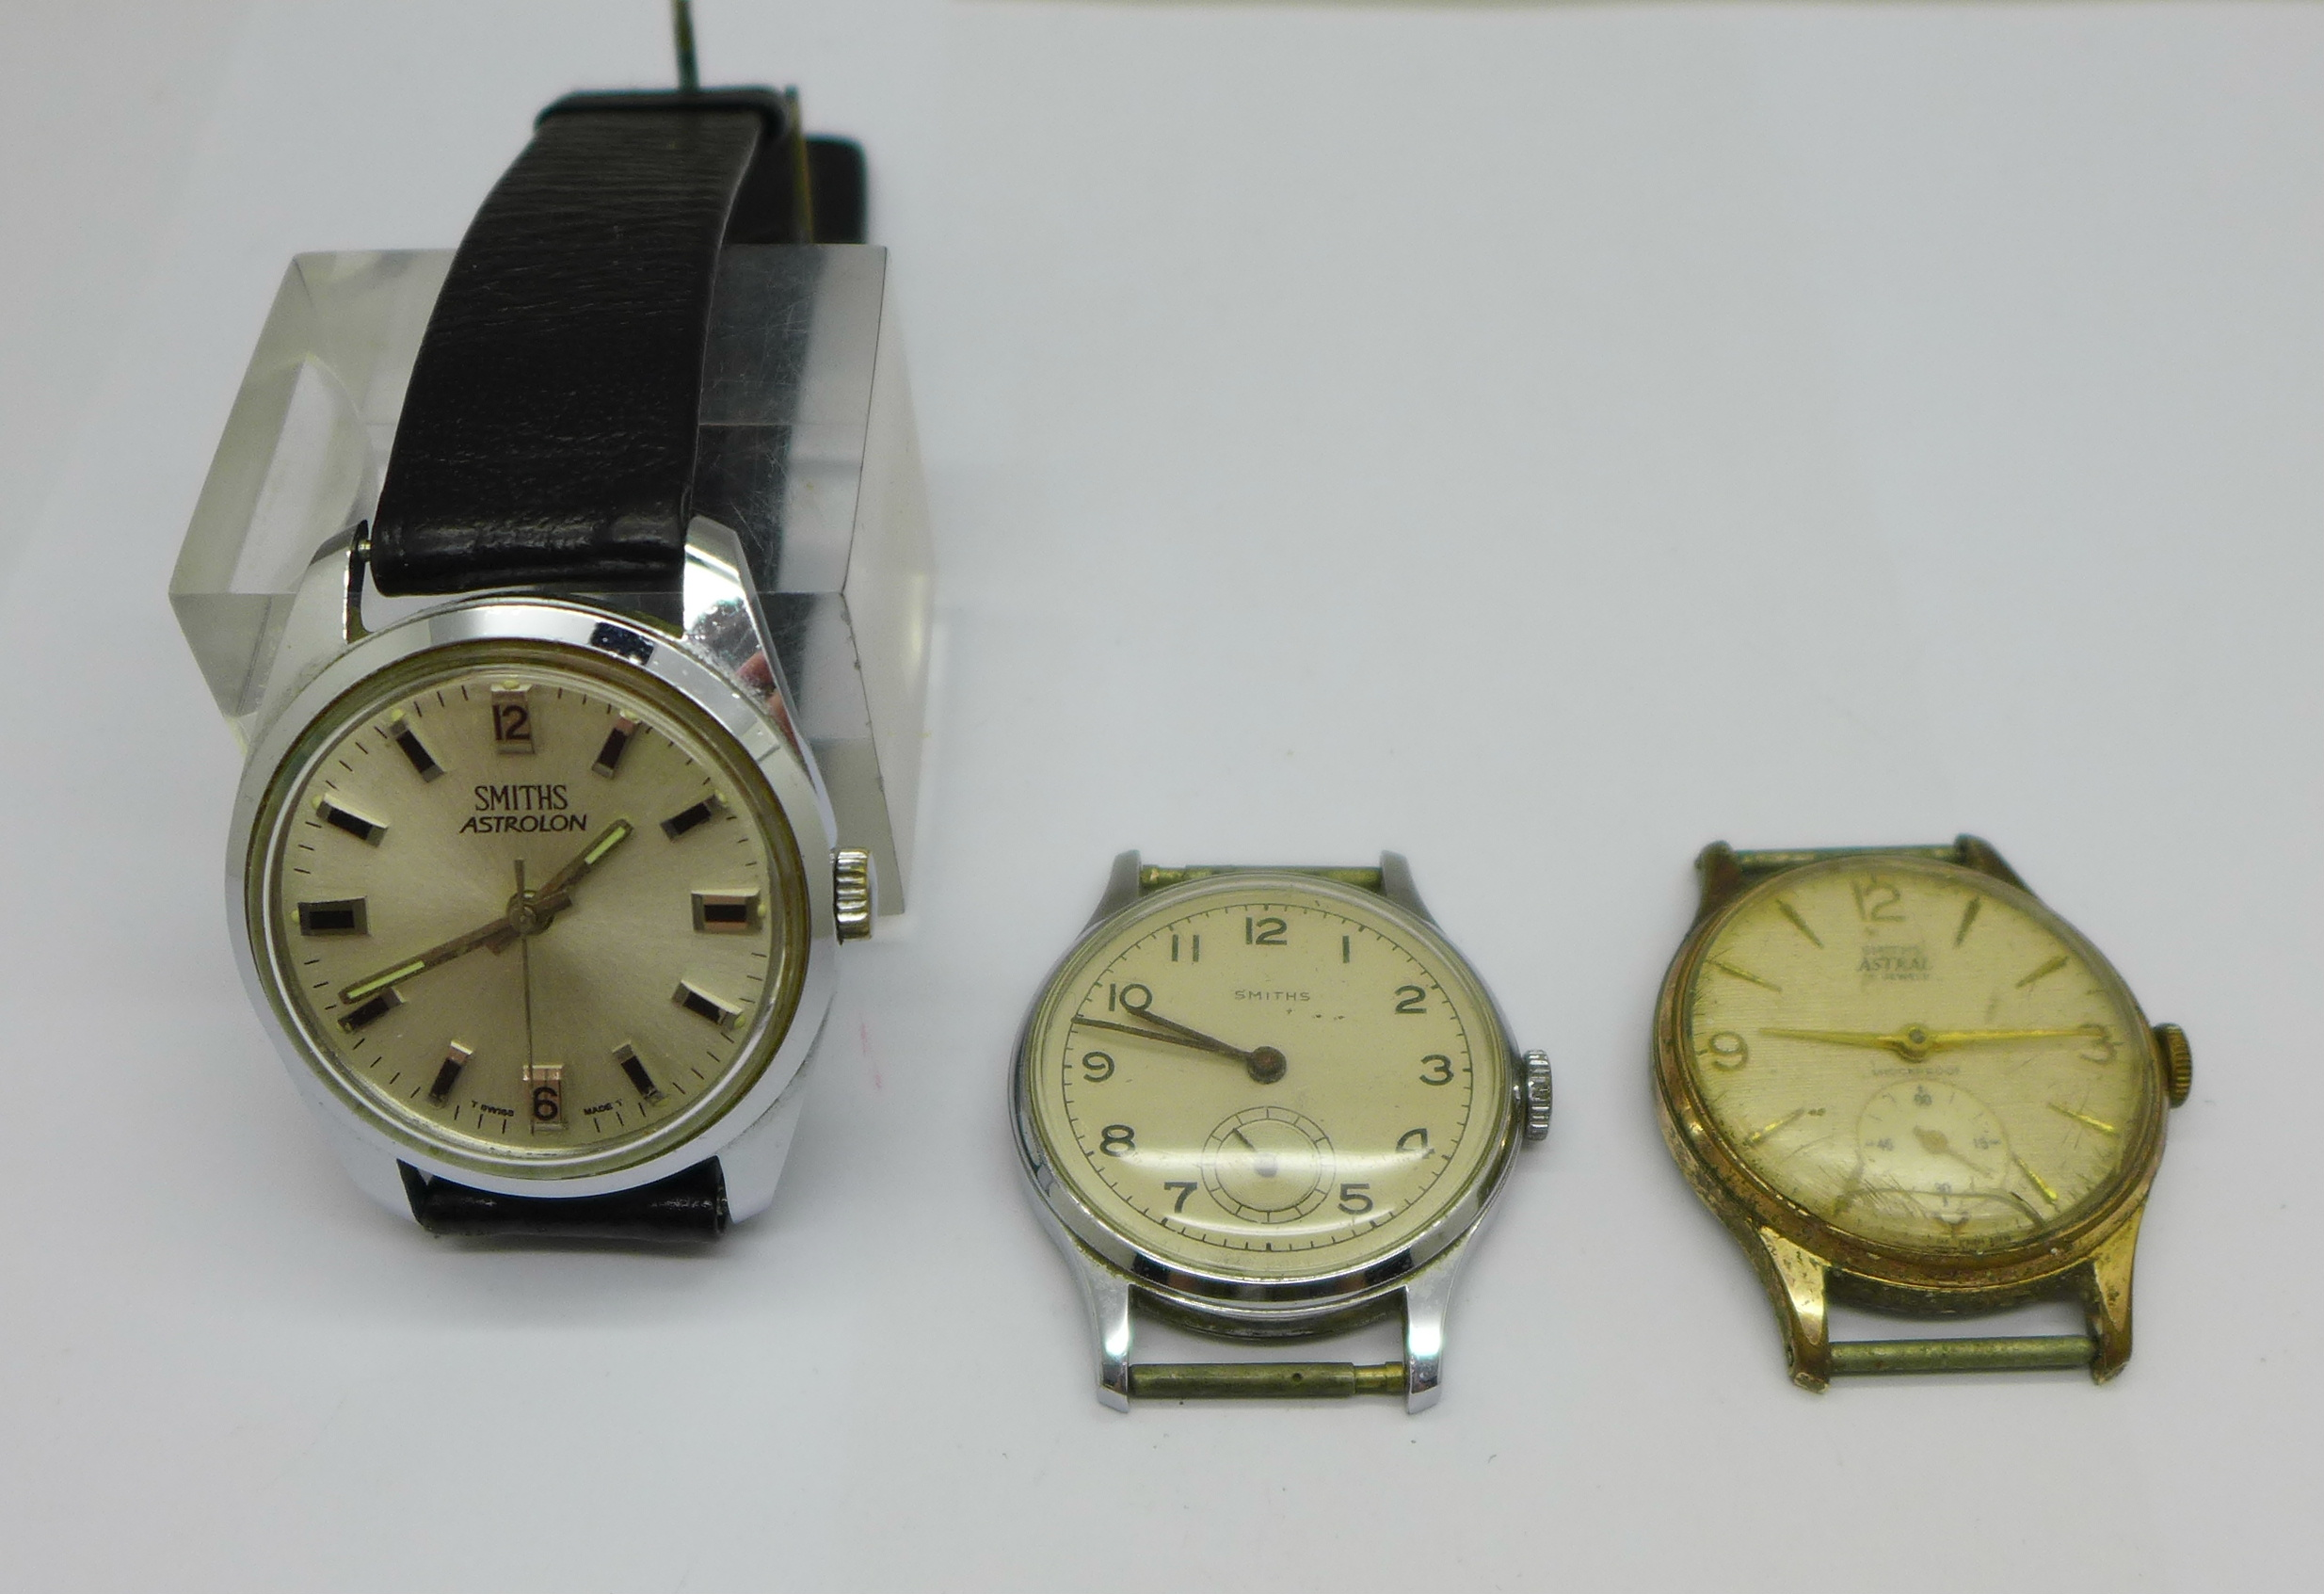 A Smiths Astral, Smiths Astrolon and one other Smiths wristwatch with De Luxe movement